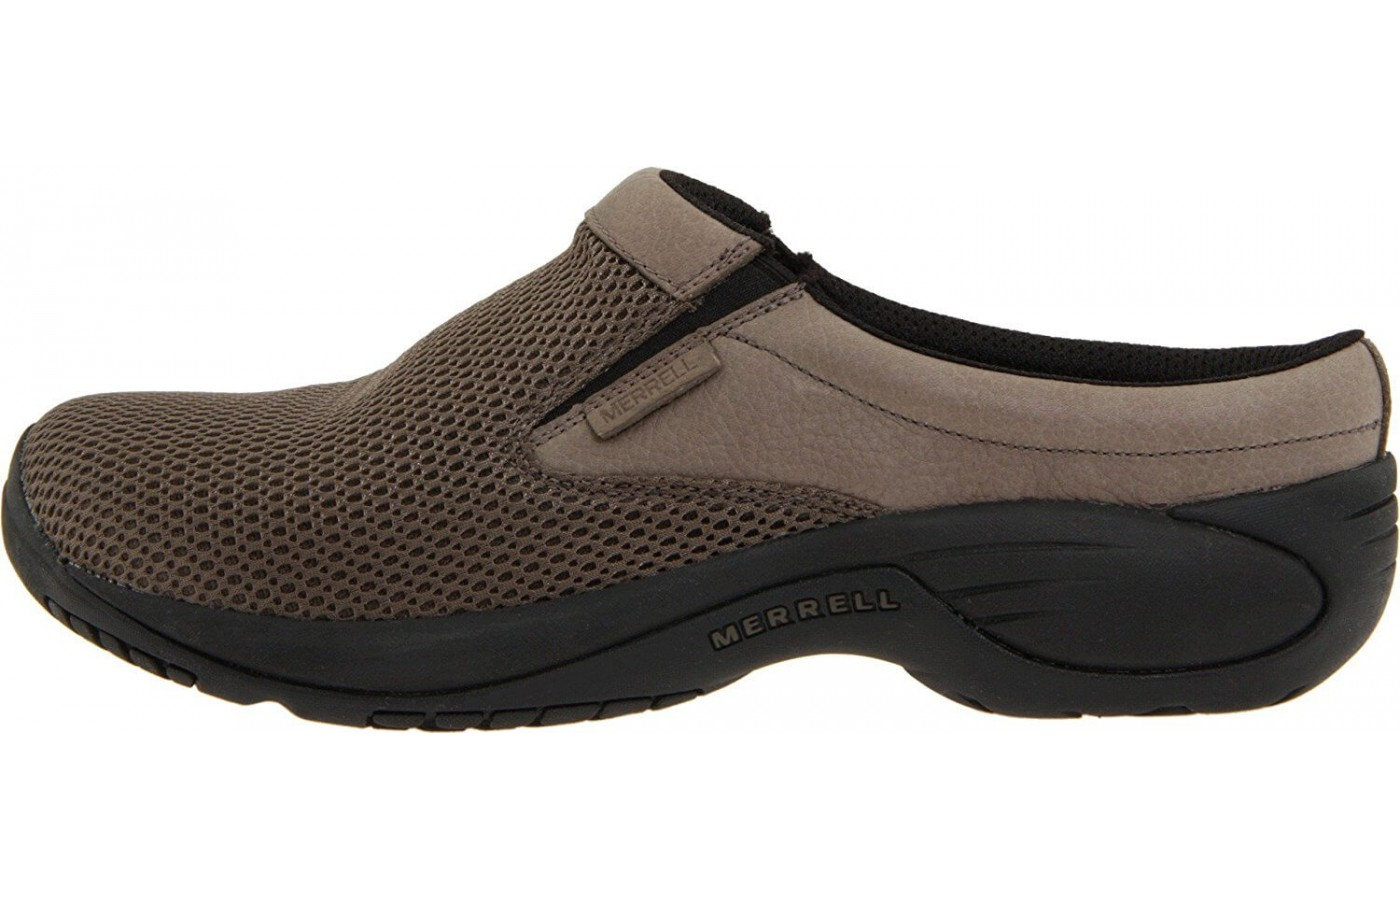 The Merrell Encore Bypass has a leather mesh upper